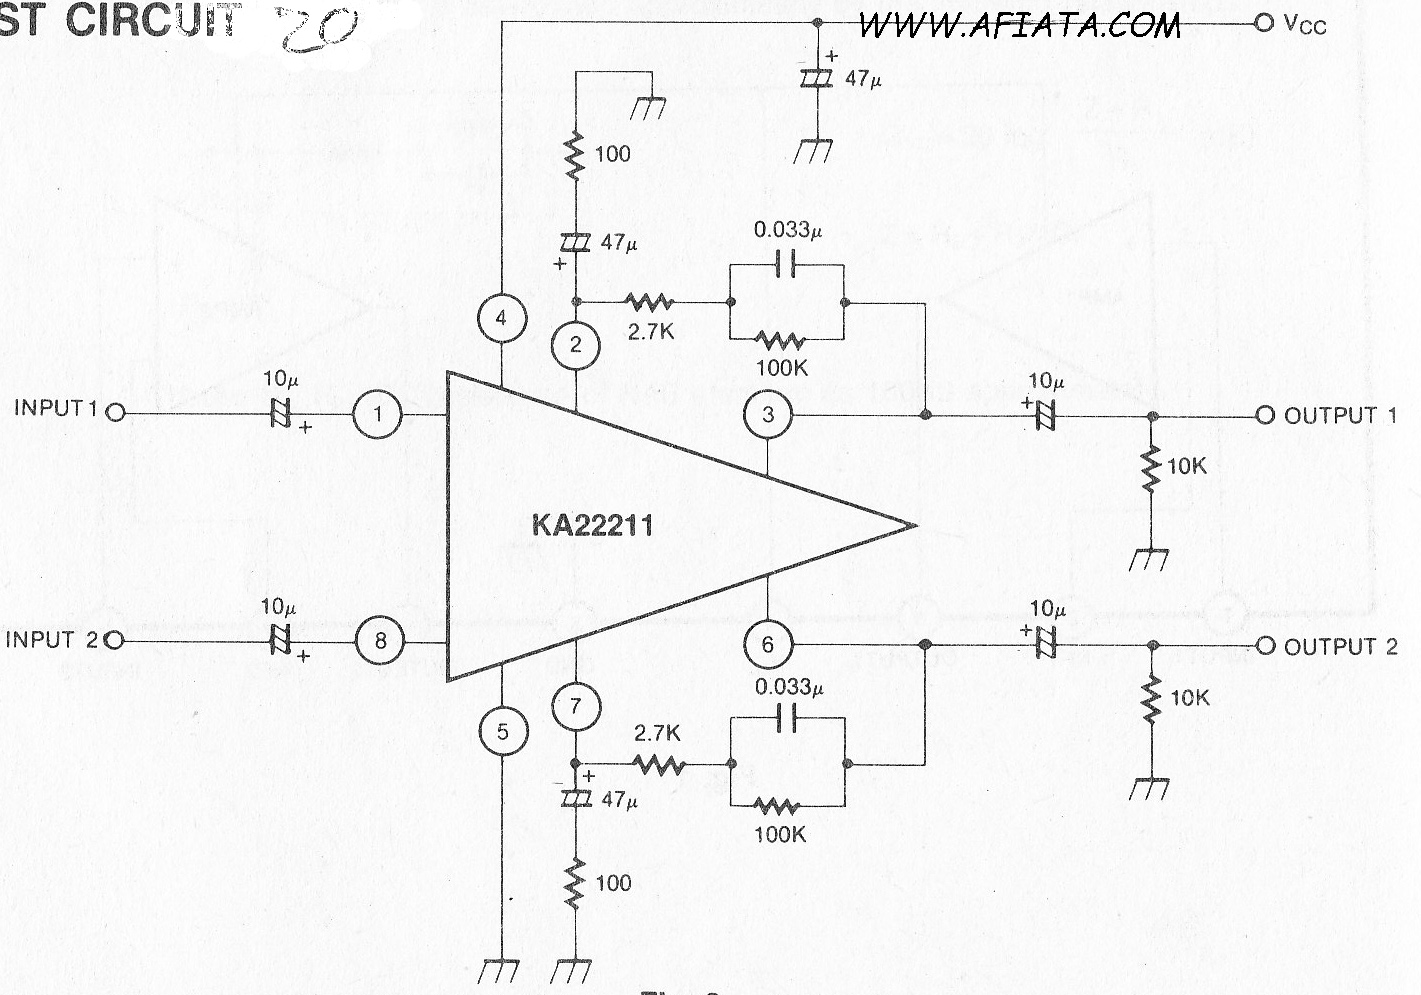 LOw Noise Equalizer Amplifier circuit using KA22211